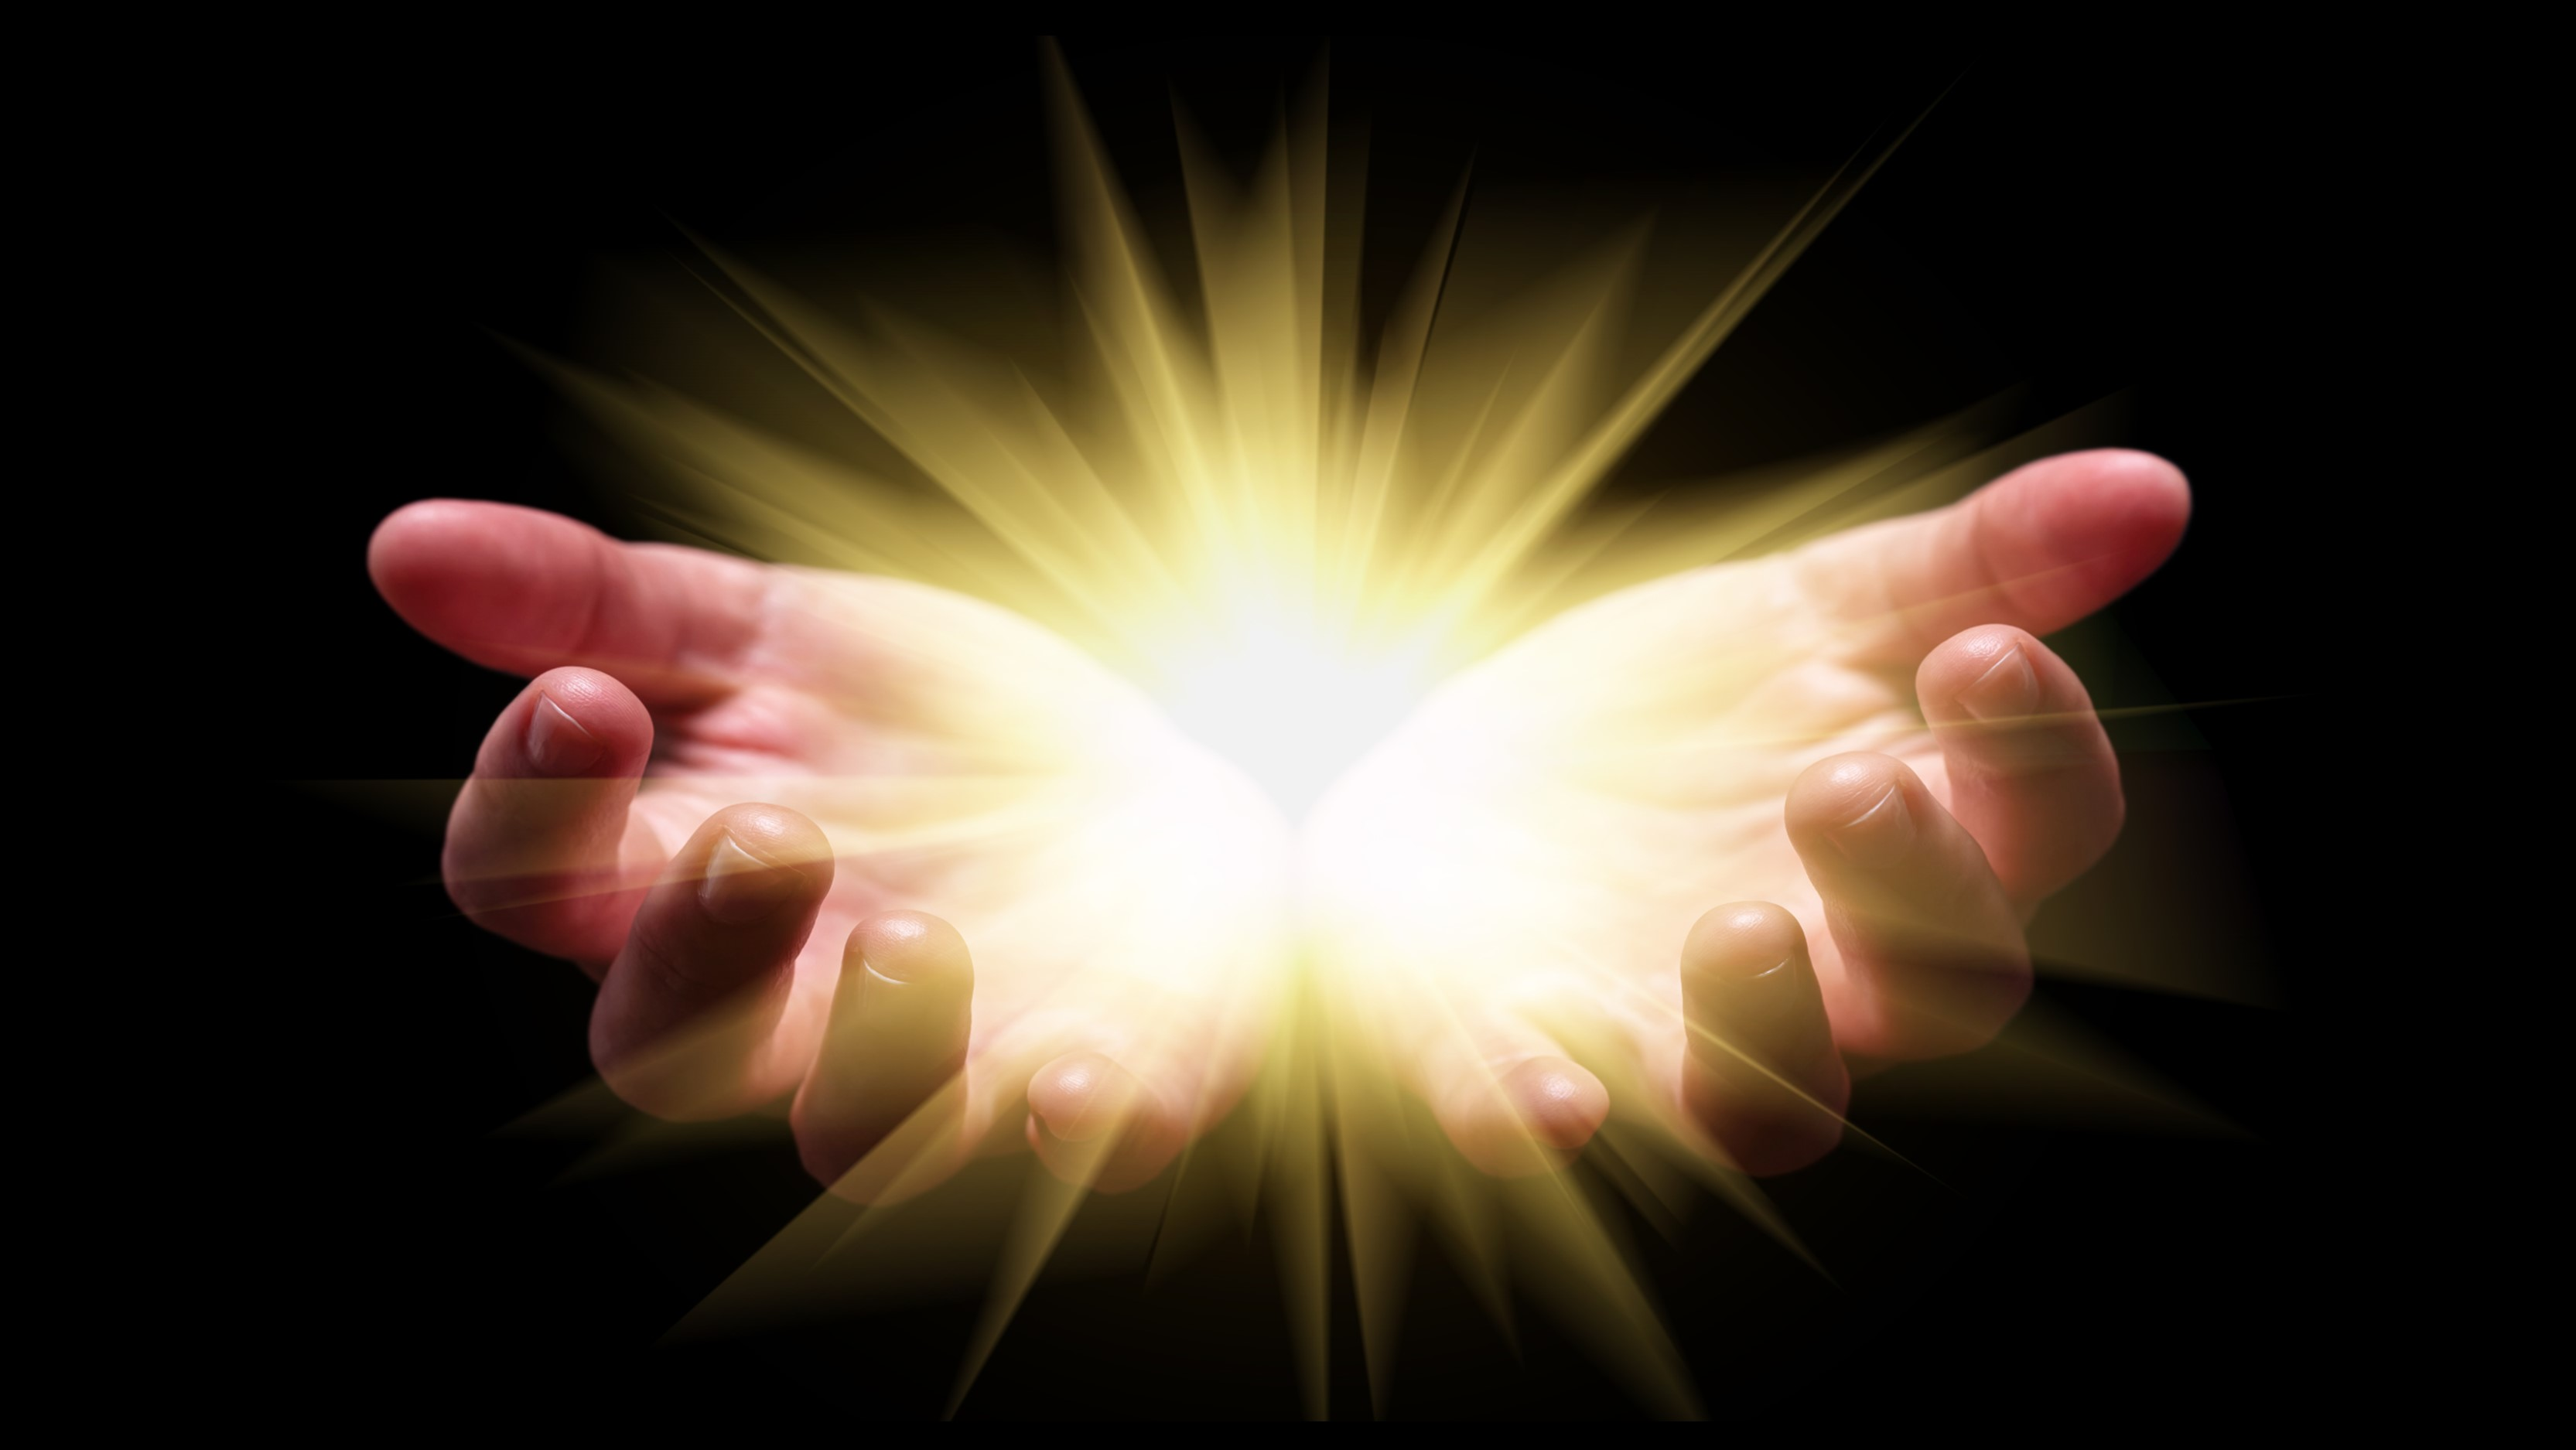 Hands with God Rays